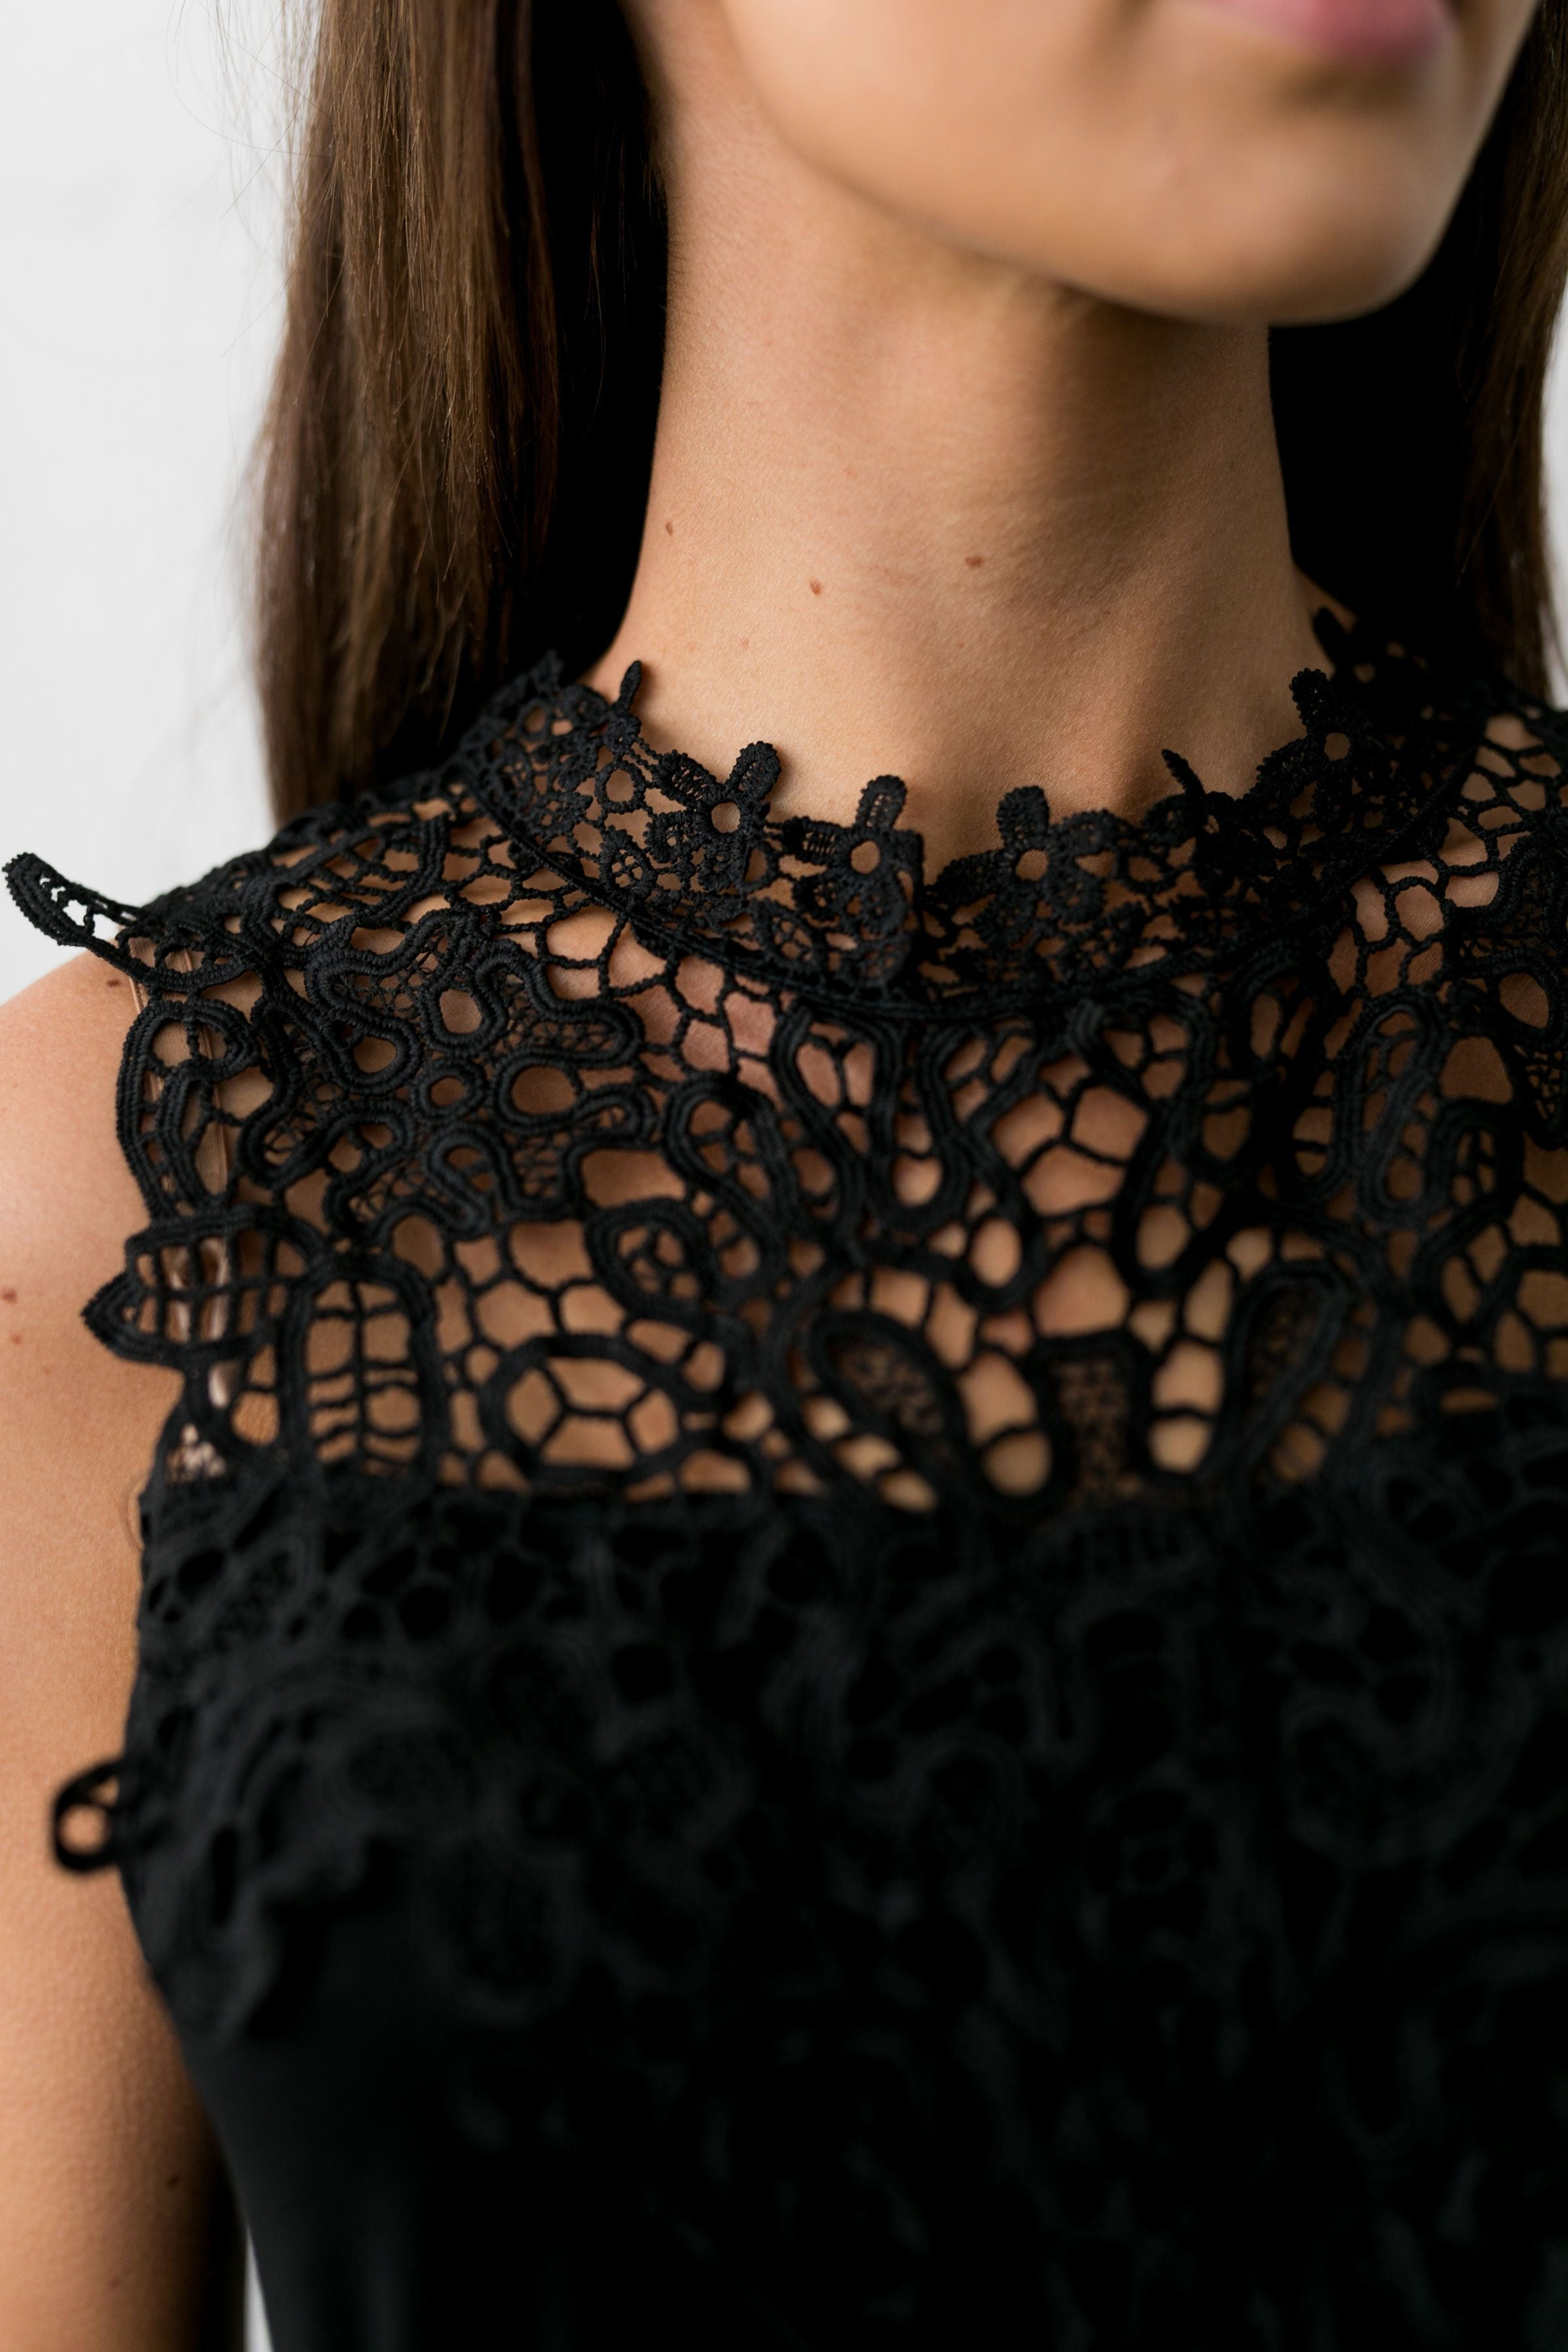 Sophisticated Lace Sleeveless Top - ALL SALES FINAL